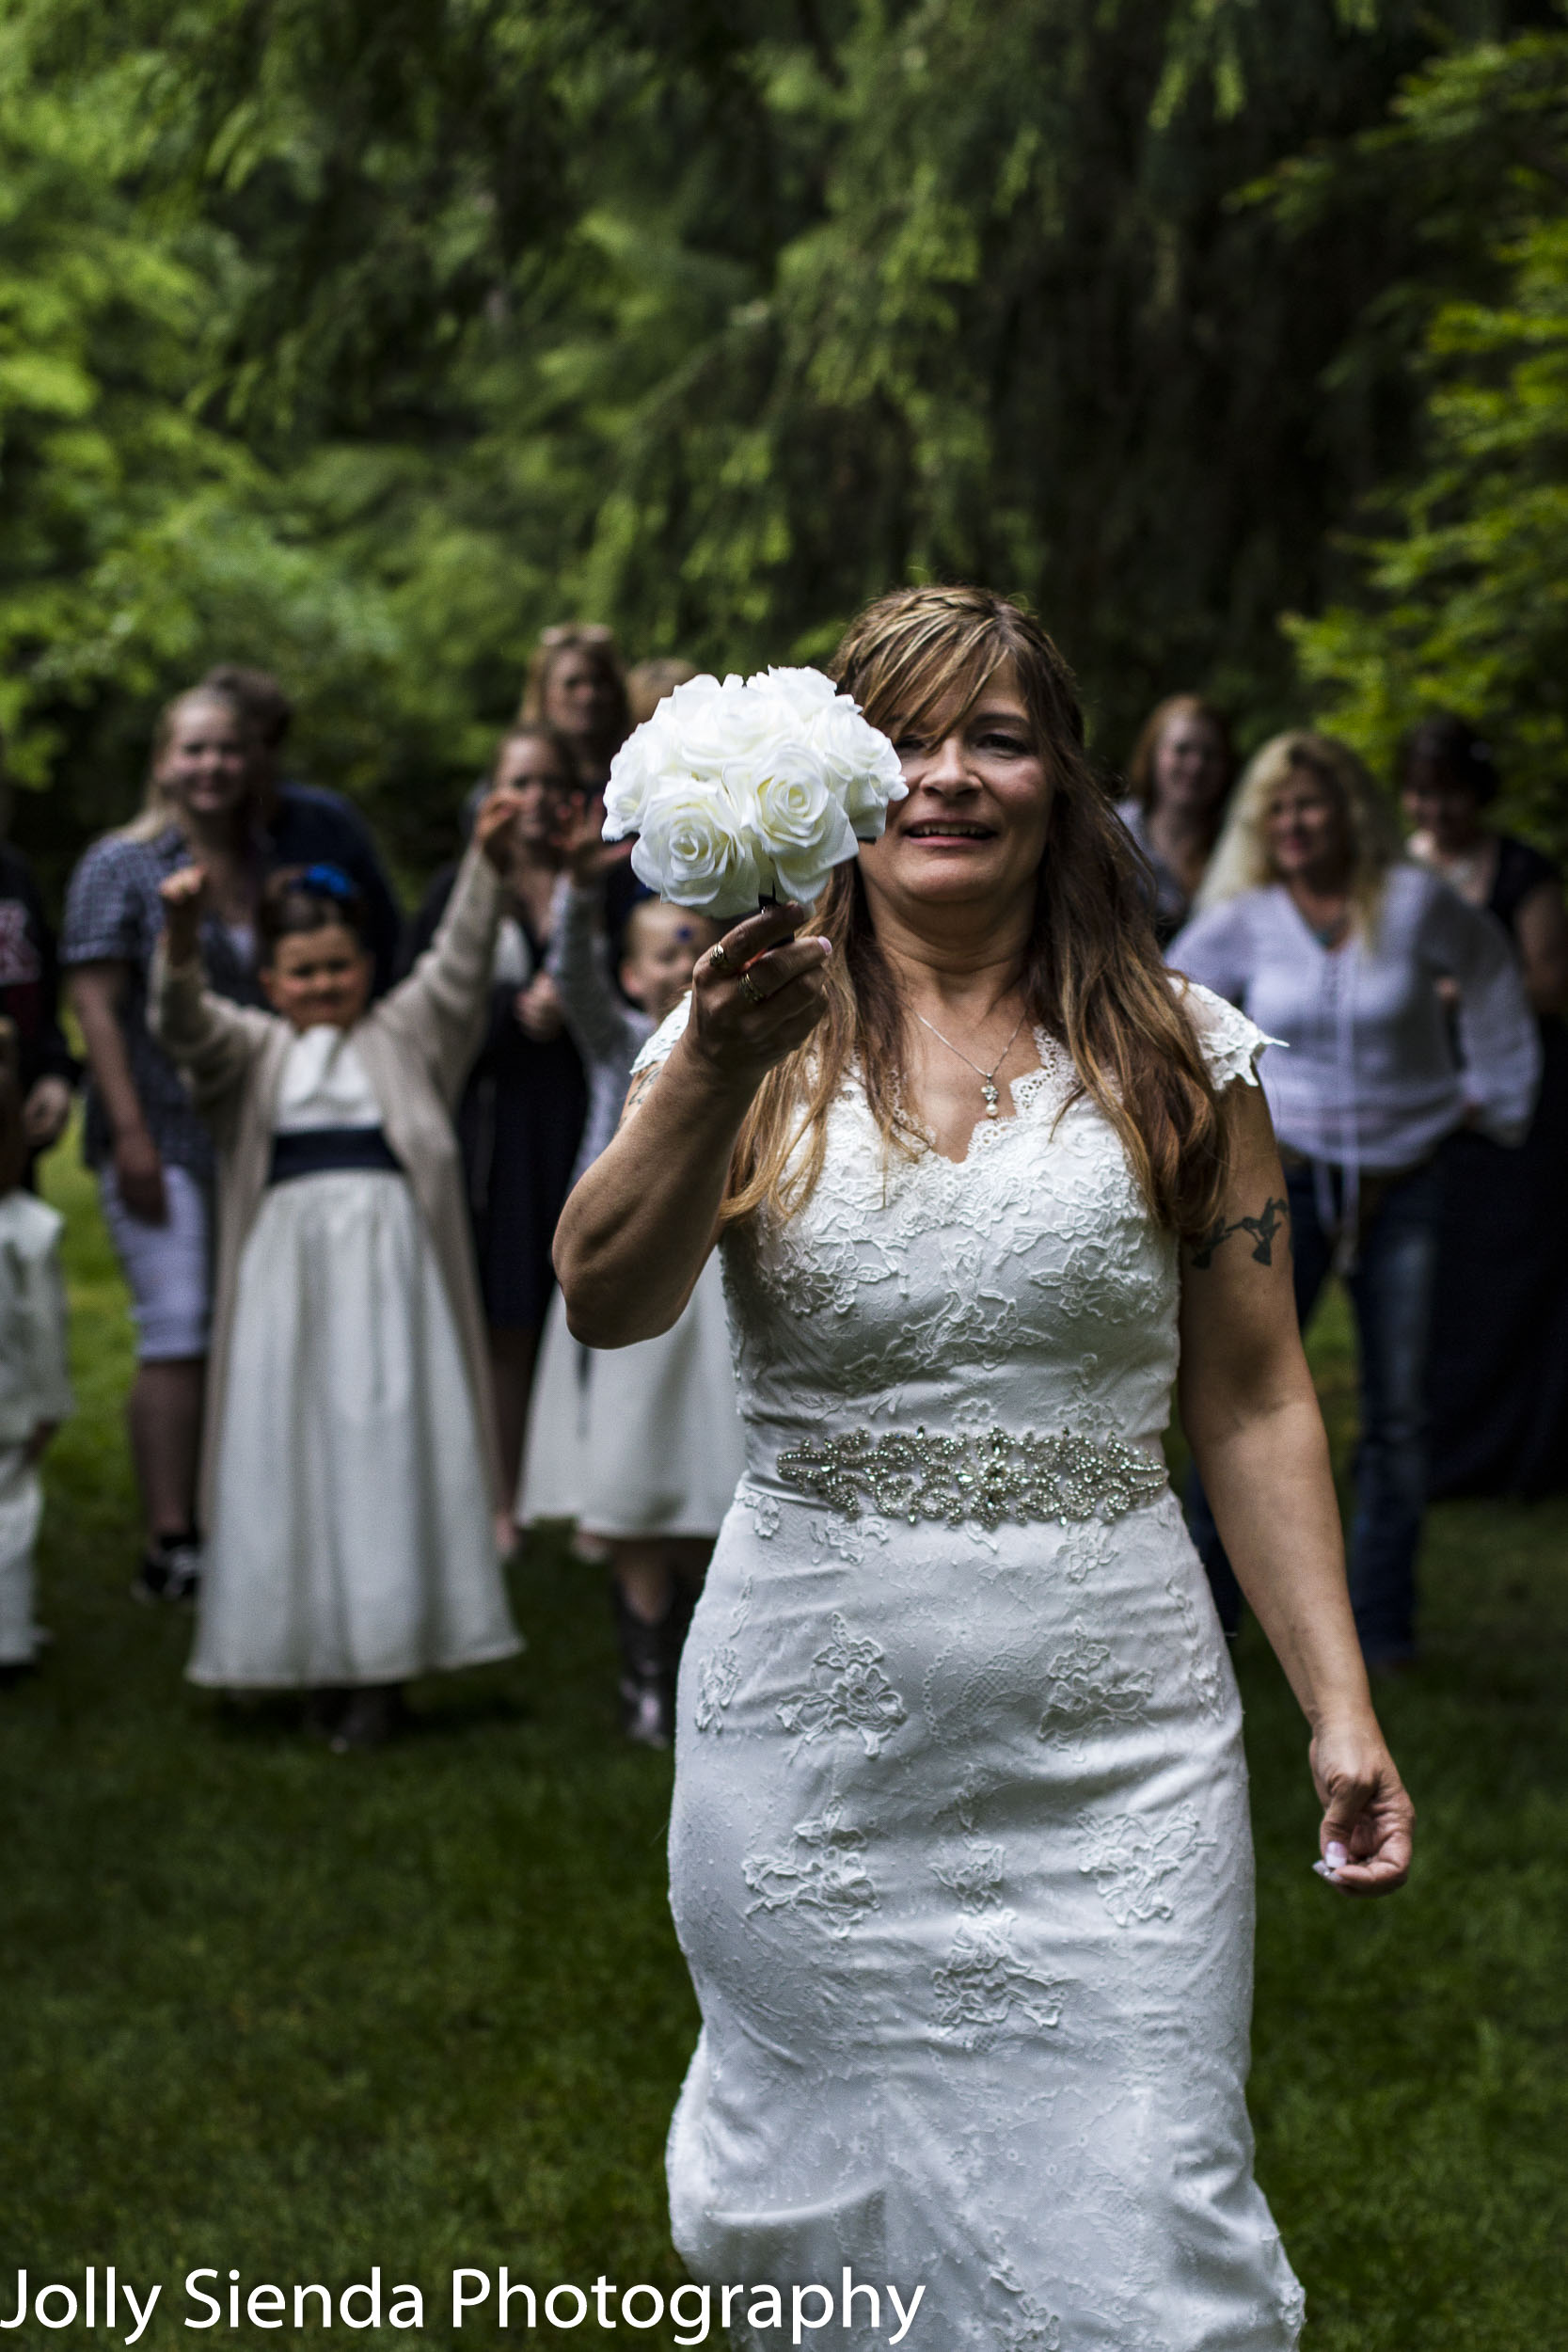 Brides readys herself to toss the weddng bouquet